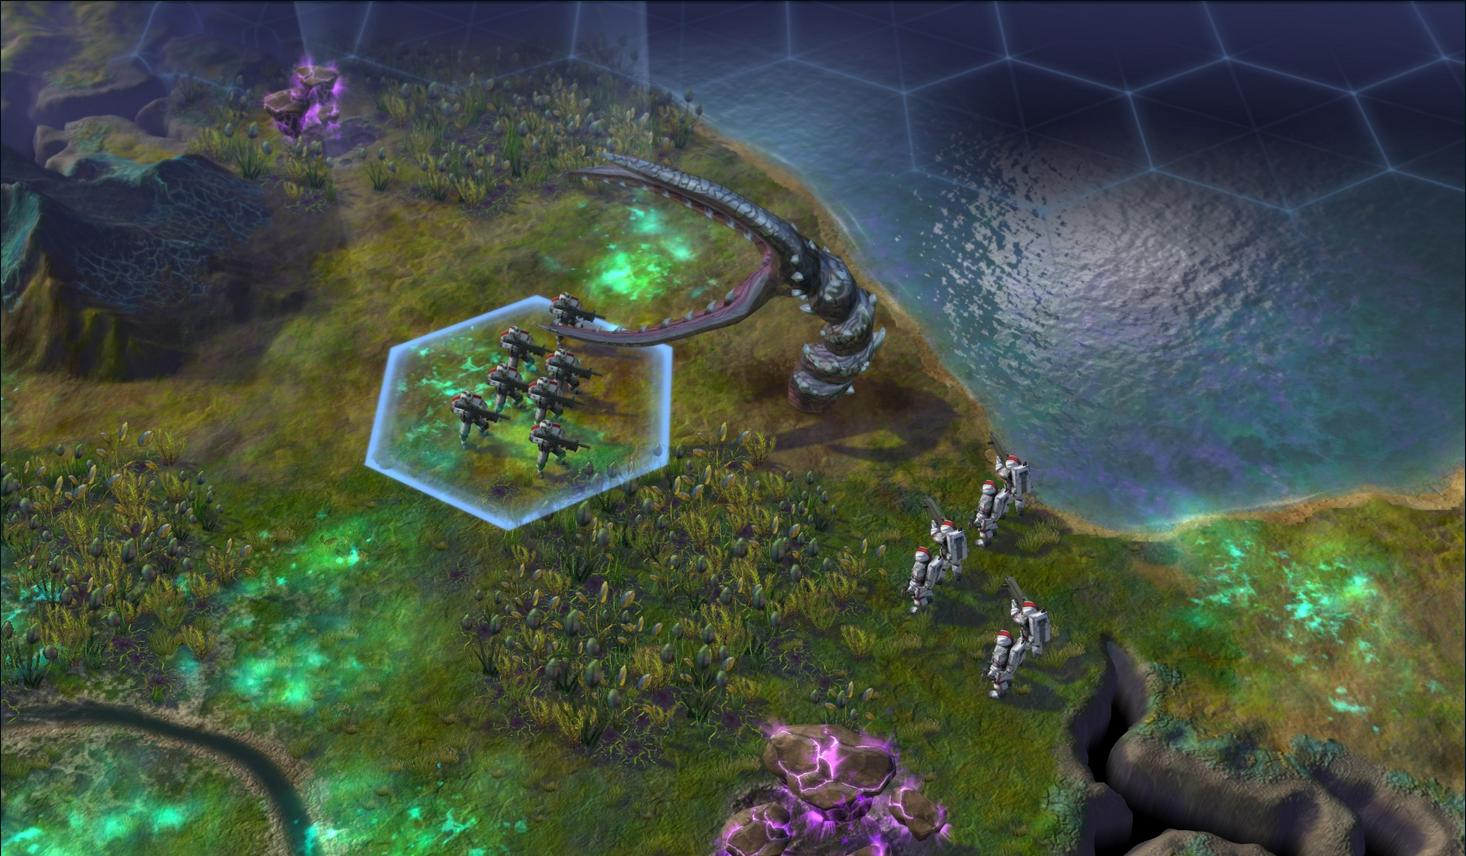 Civilization: Beyond Earth Screenshots Leaked - Update